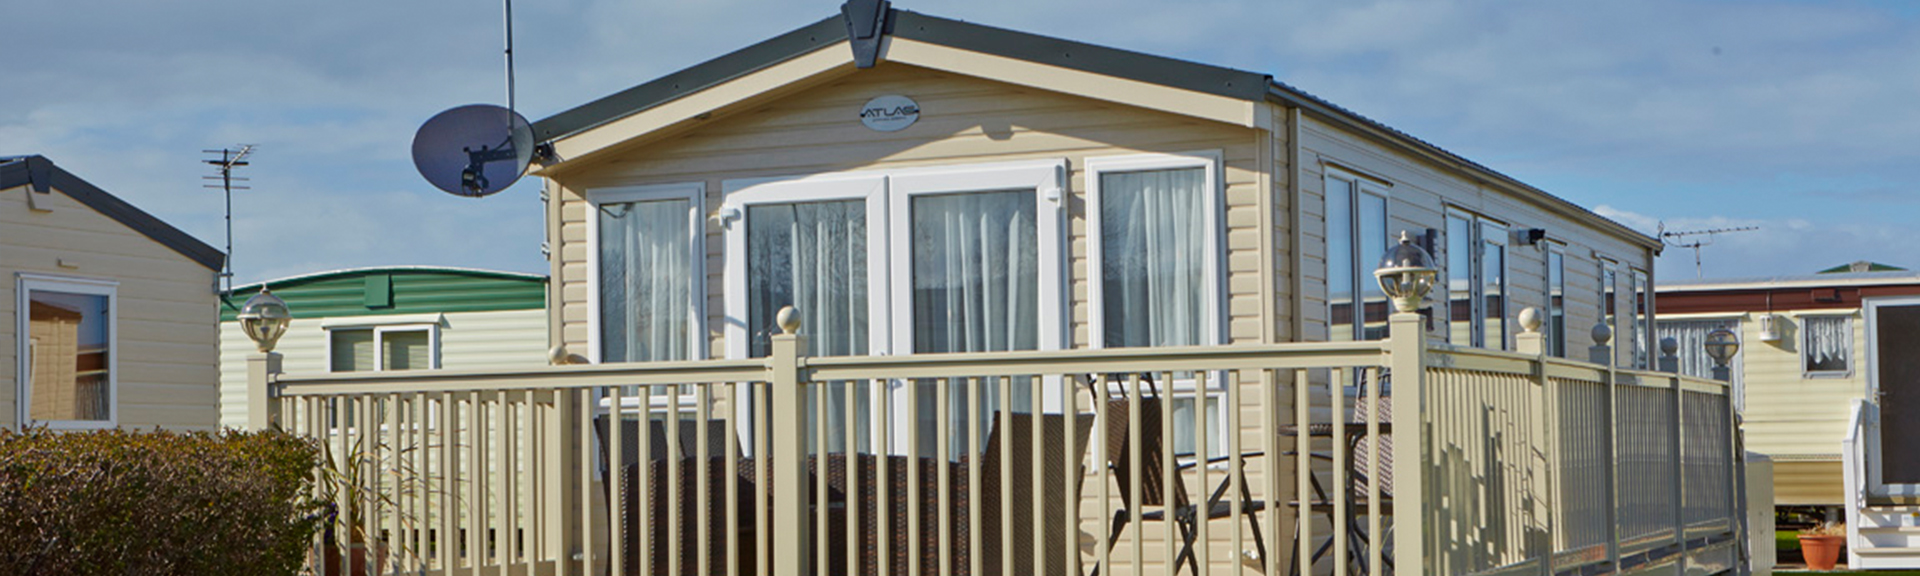 Buying a Static Caravan in North Wales